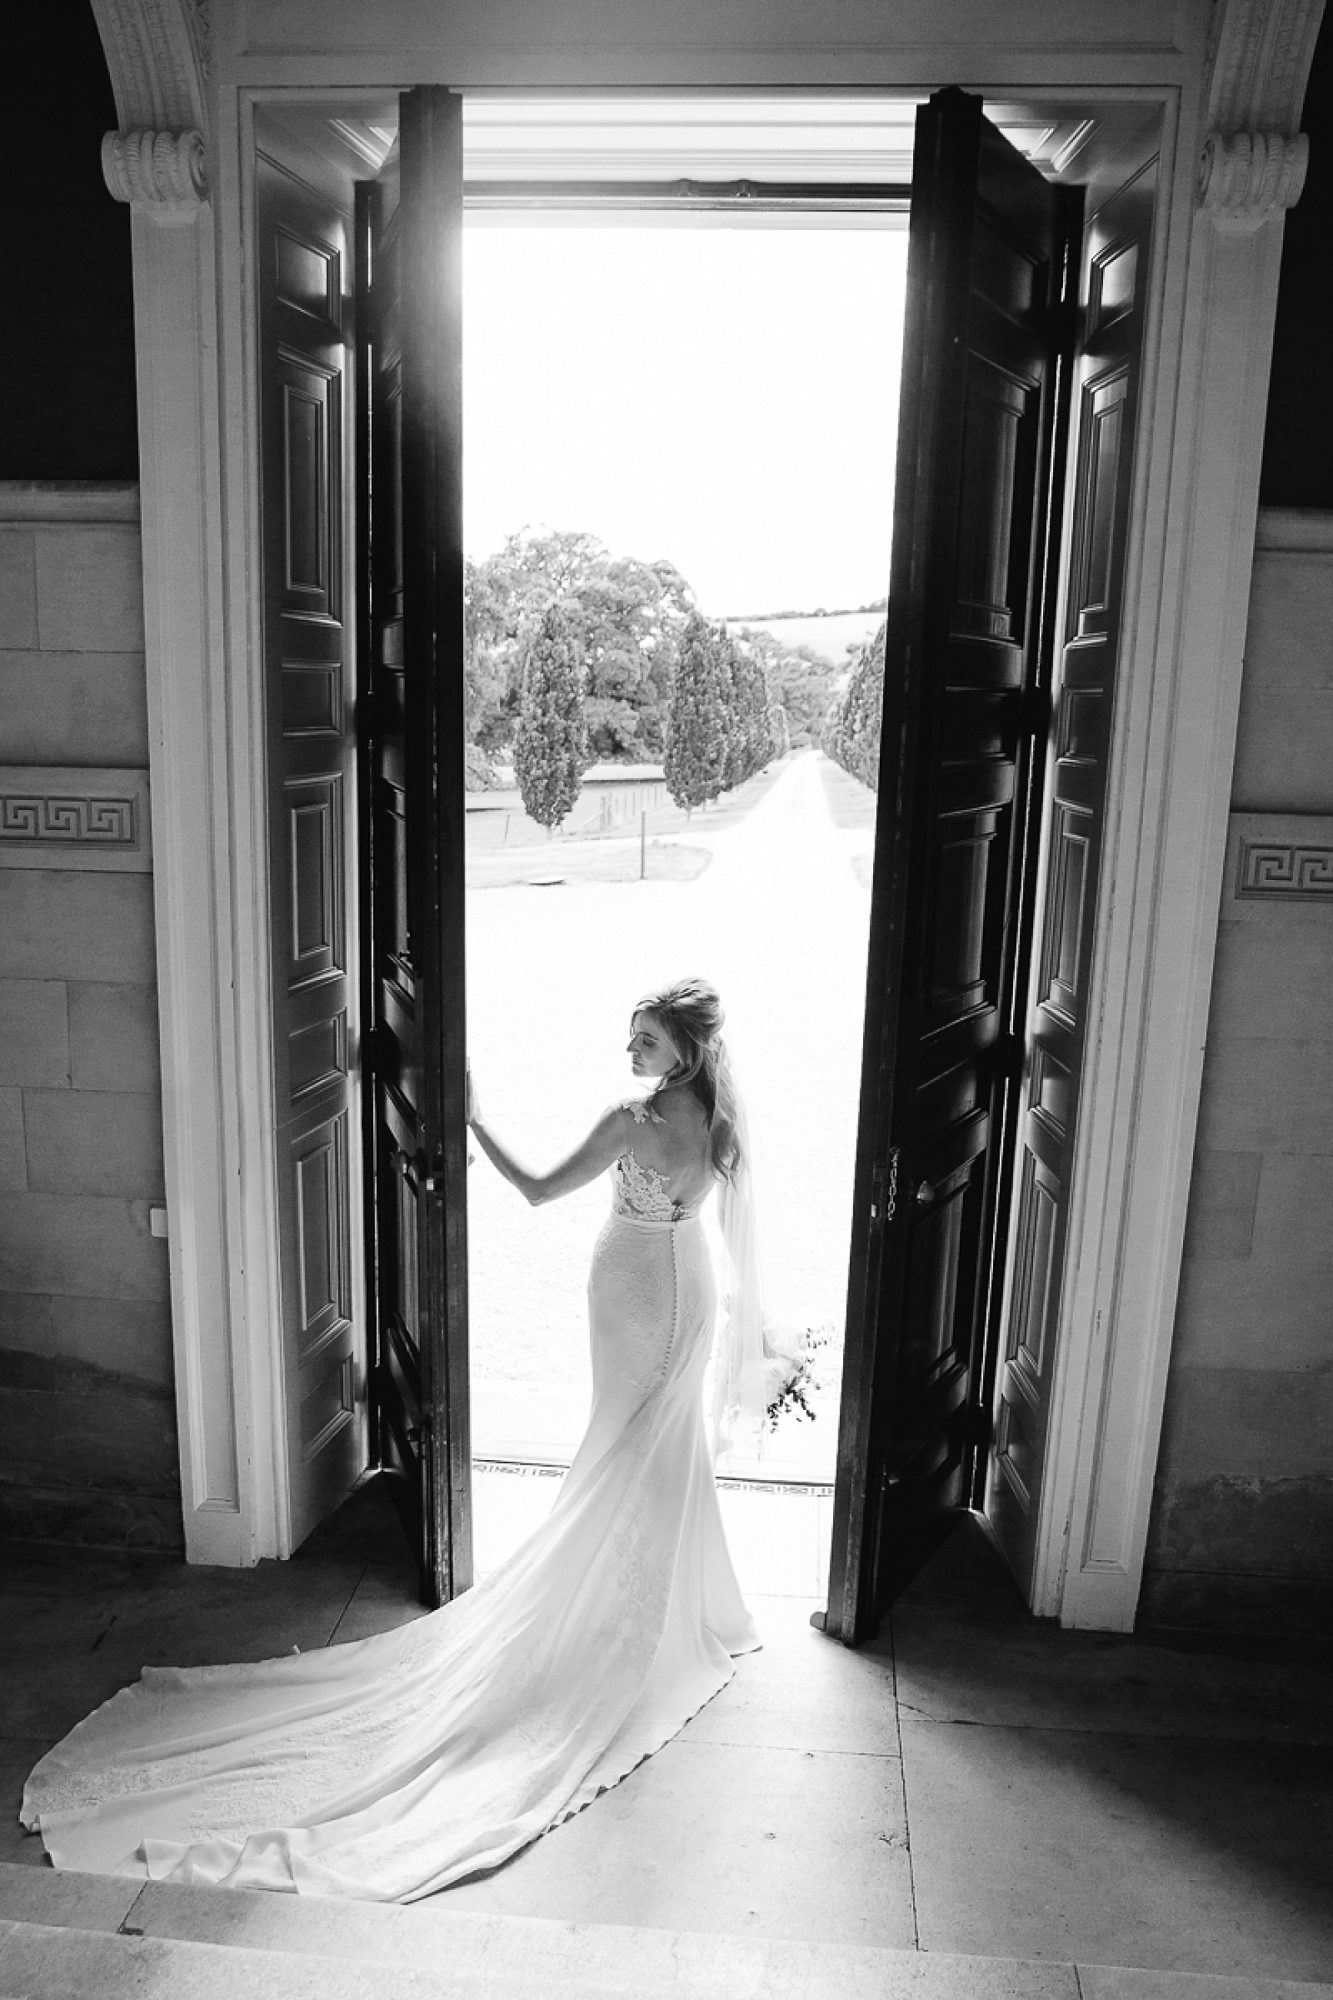 Bride in pronovias dress stands holding the giant front door at Pynes house wedding in devon